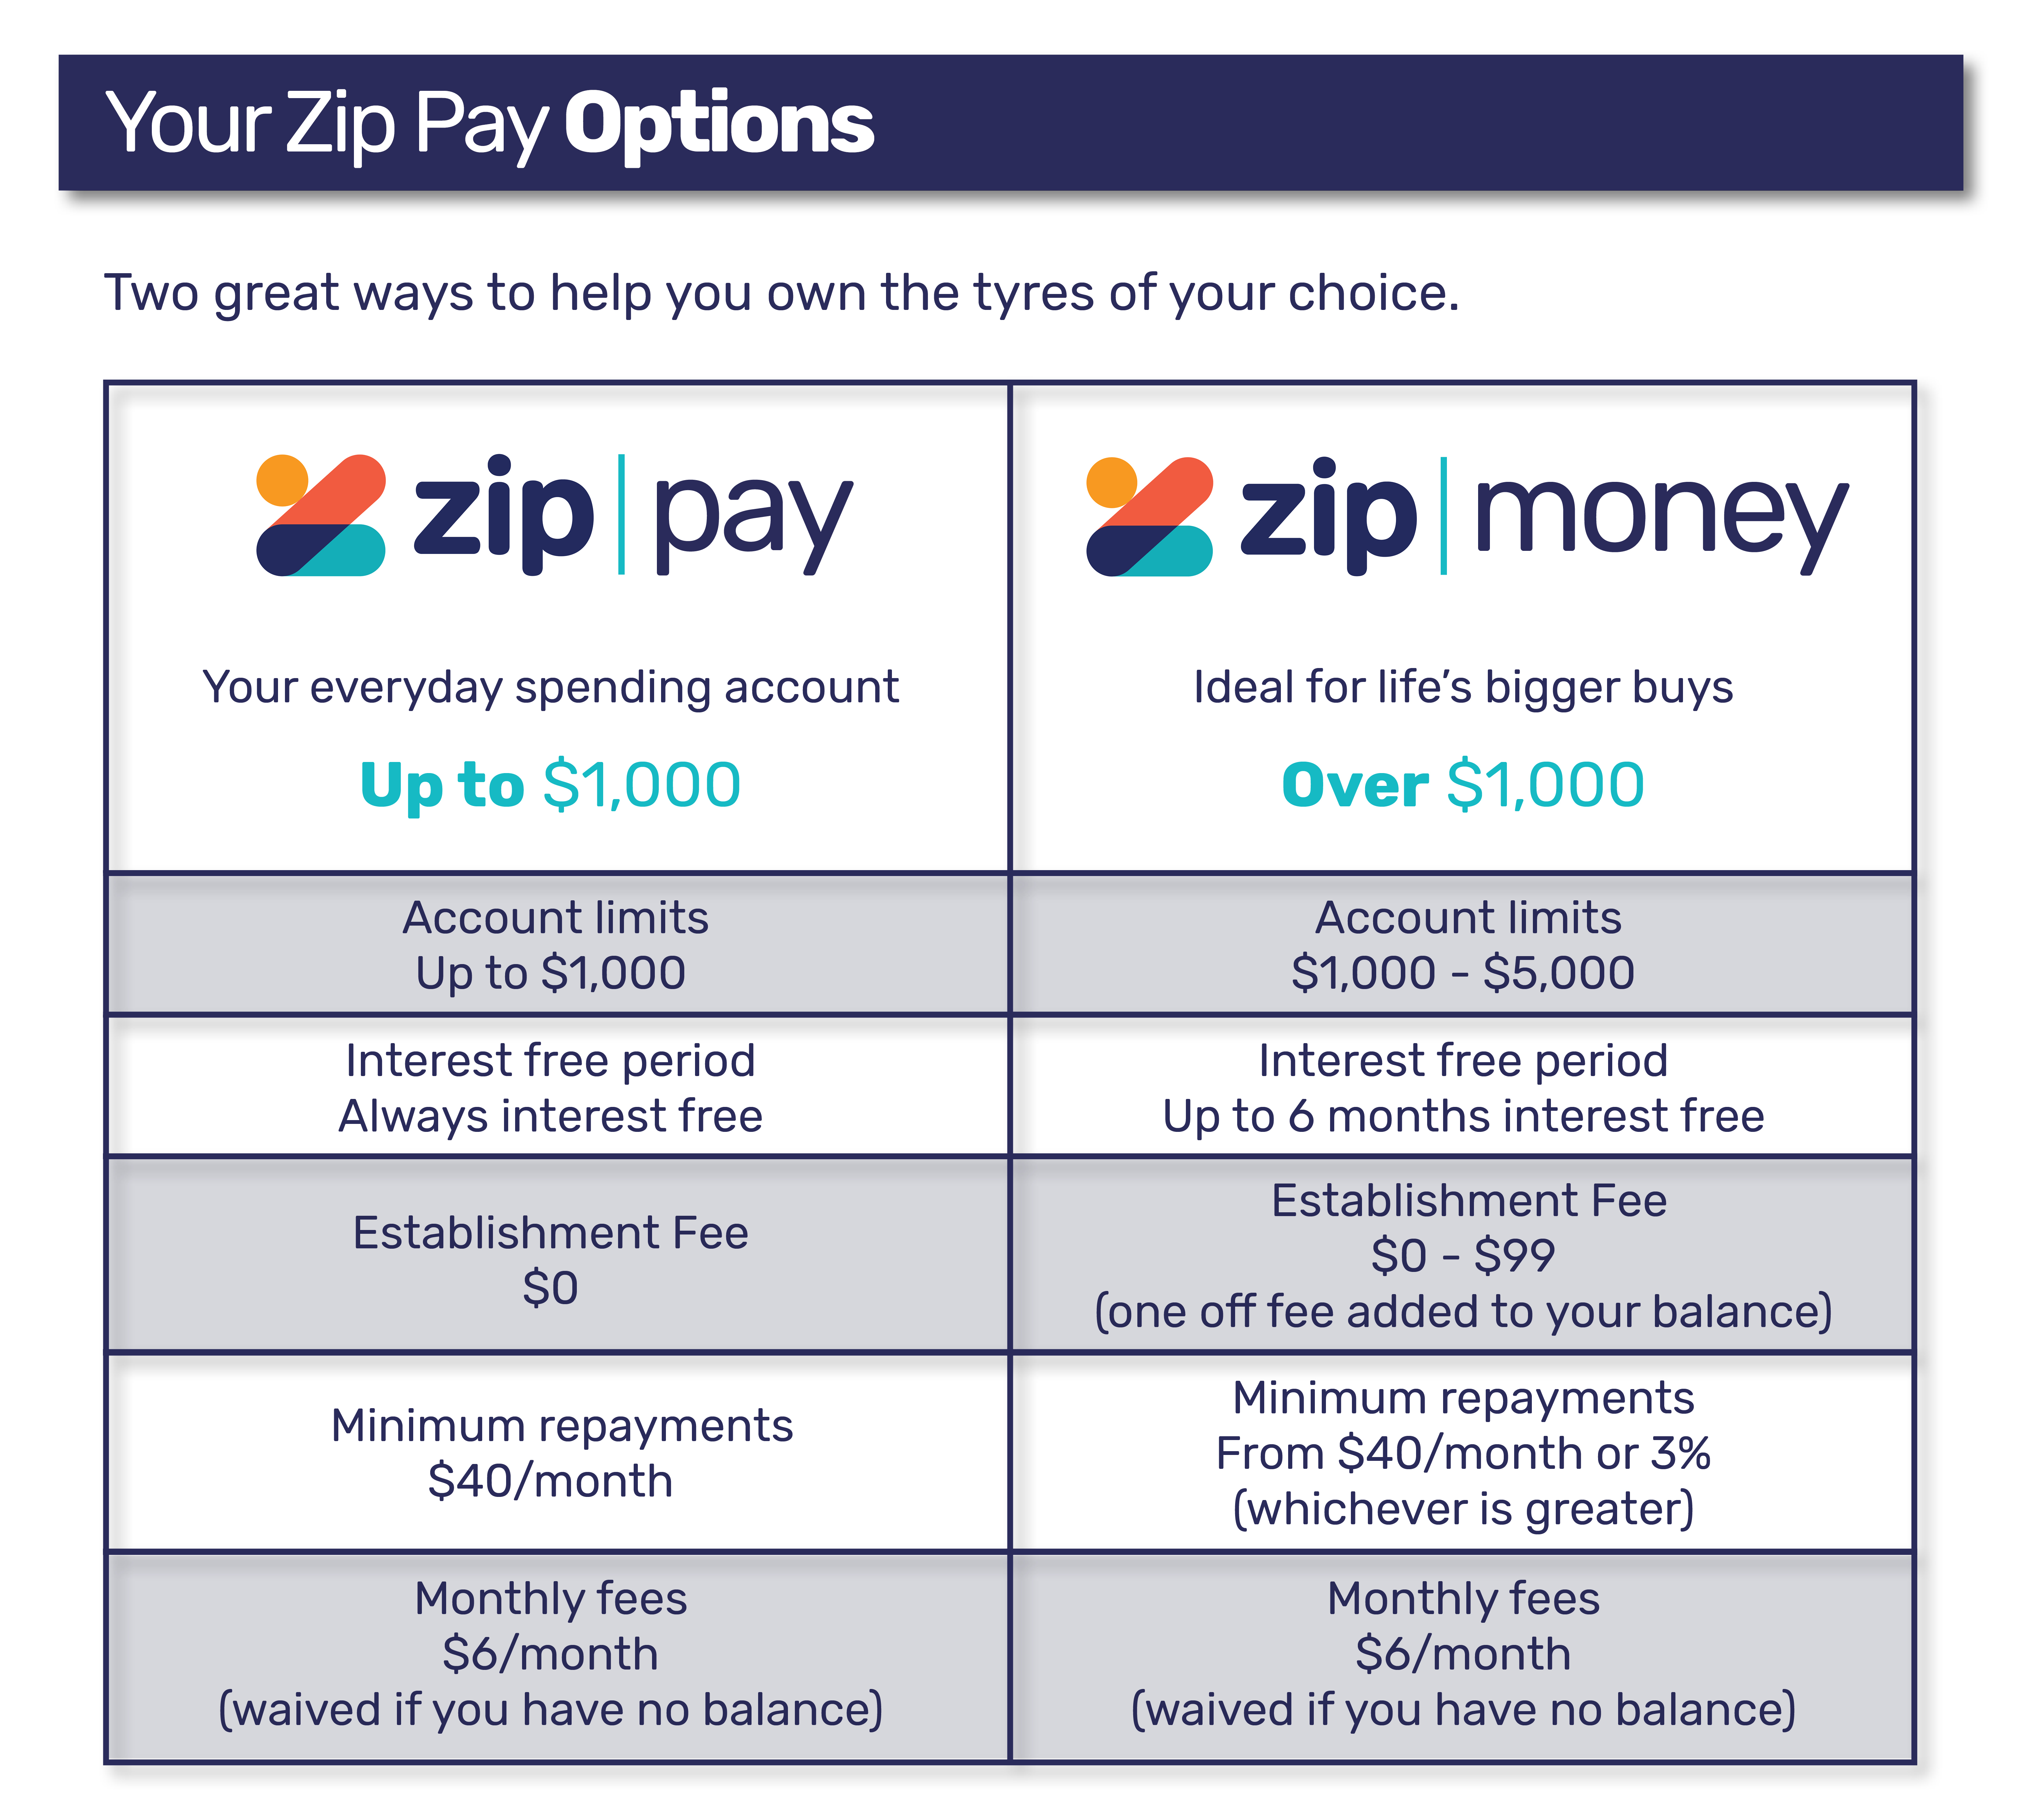 Your Zip Pay Options